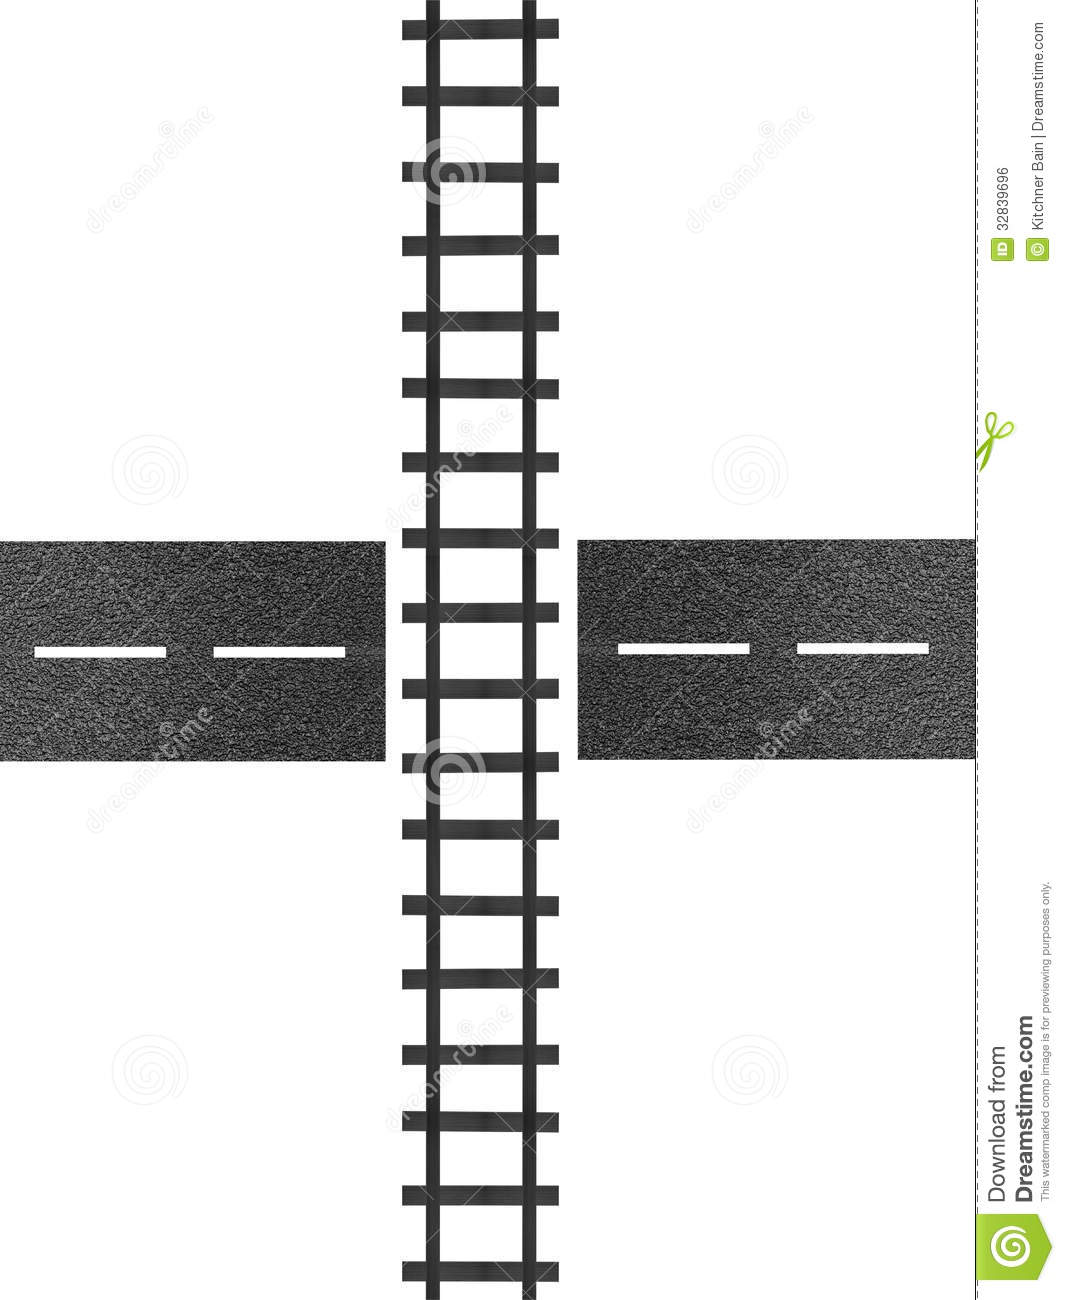 Railways clipart horizontal #14